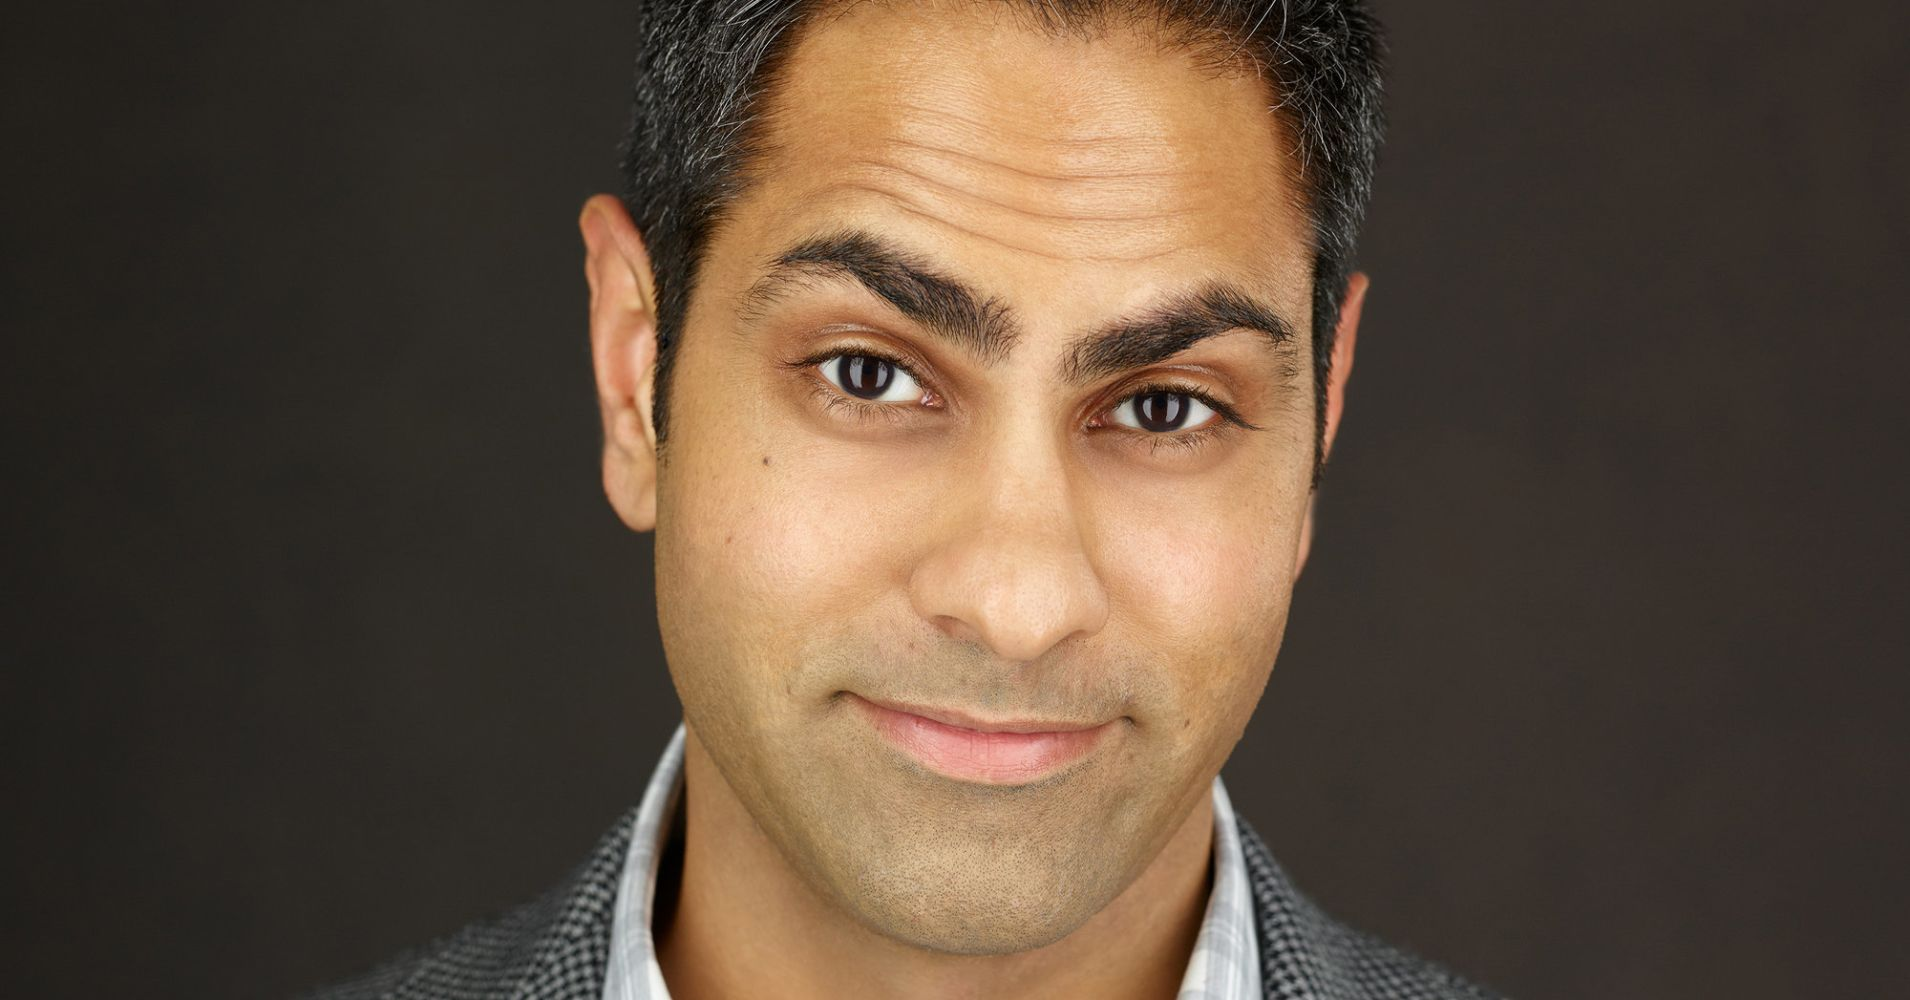 The No  1 myth about renting a home that self-made millionaire Ramit